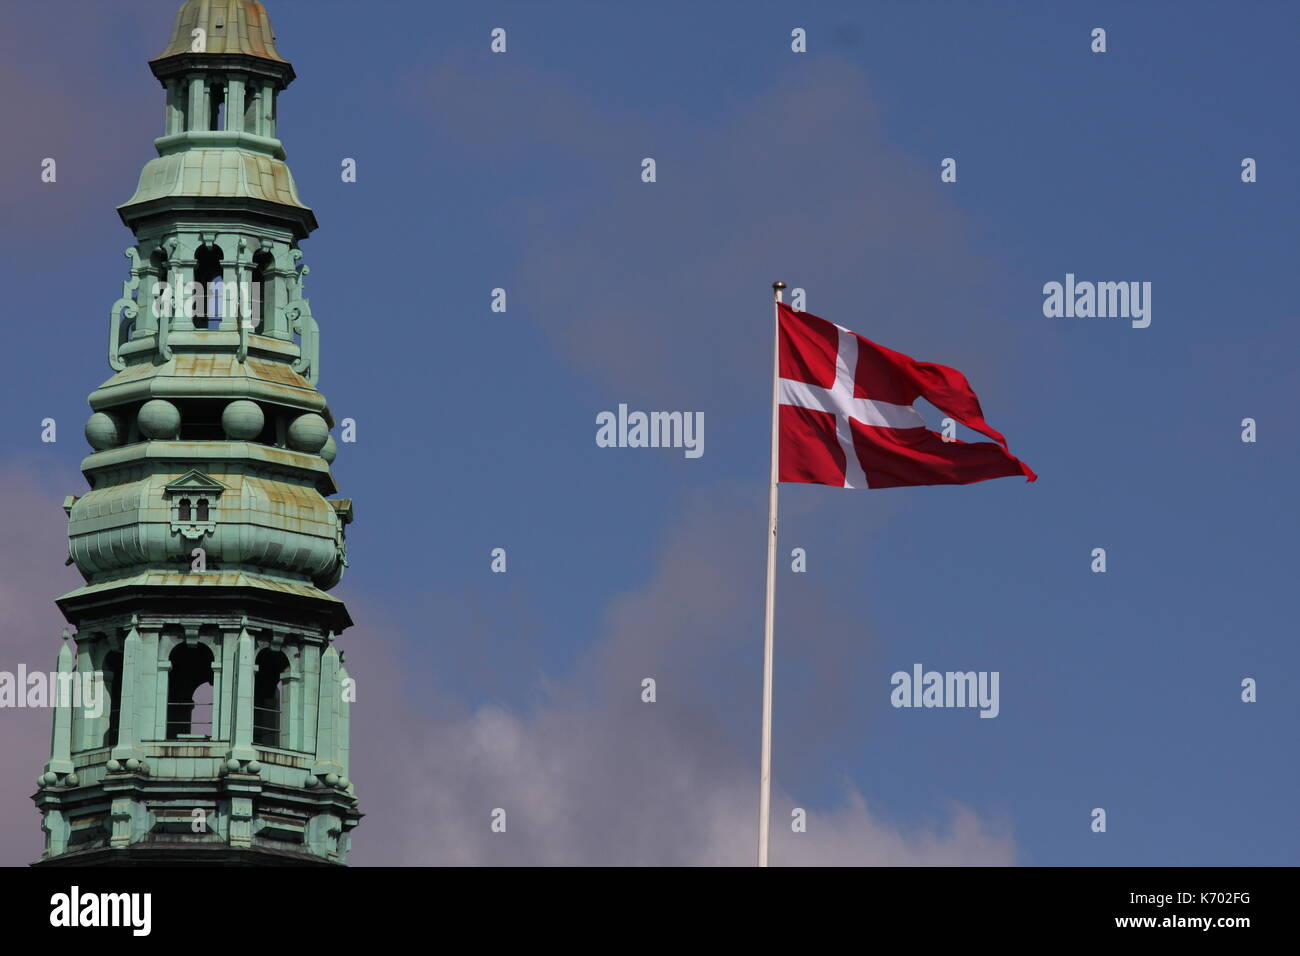 Red and white Danish flag - Denmark - Stock Image